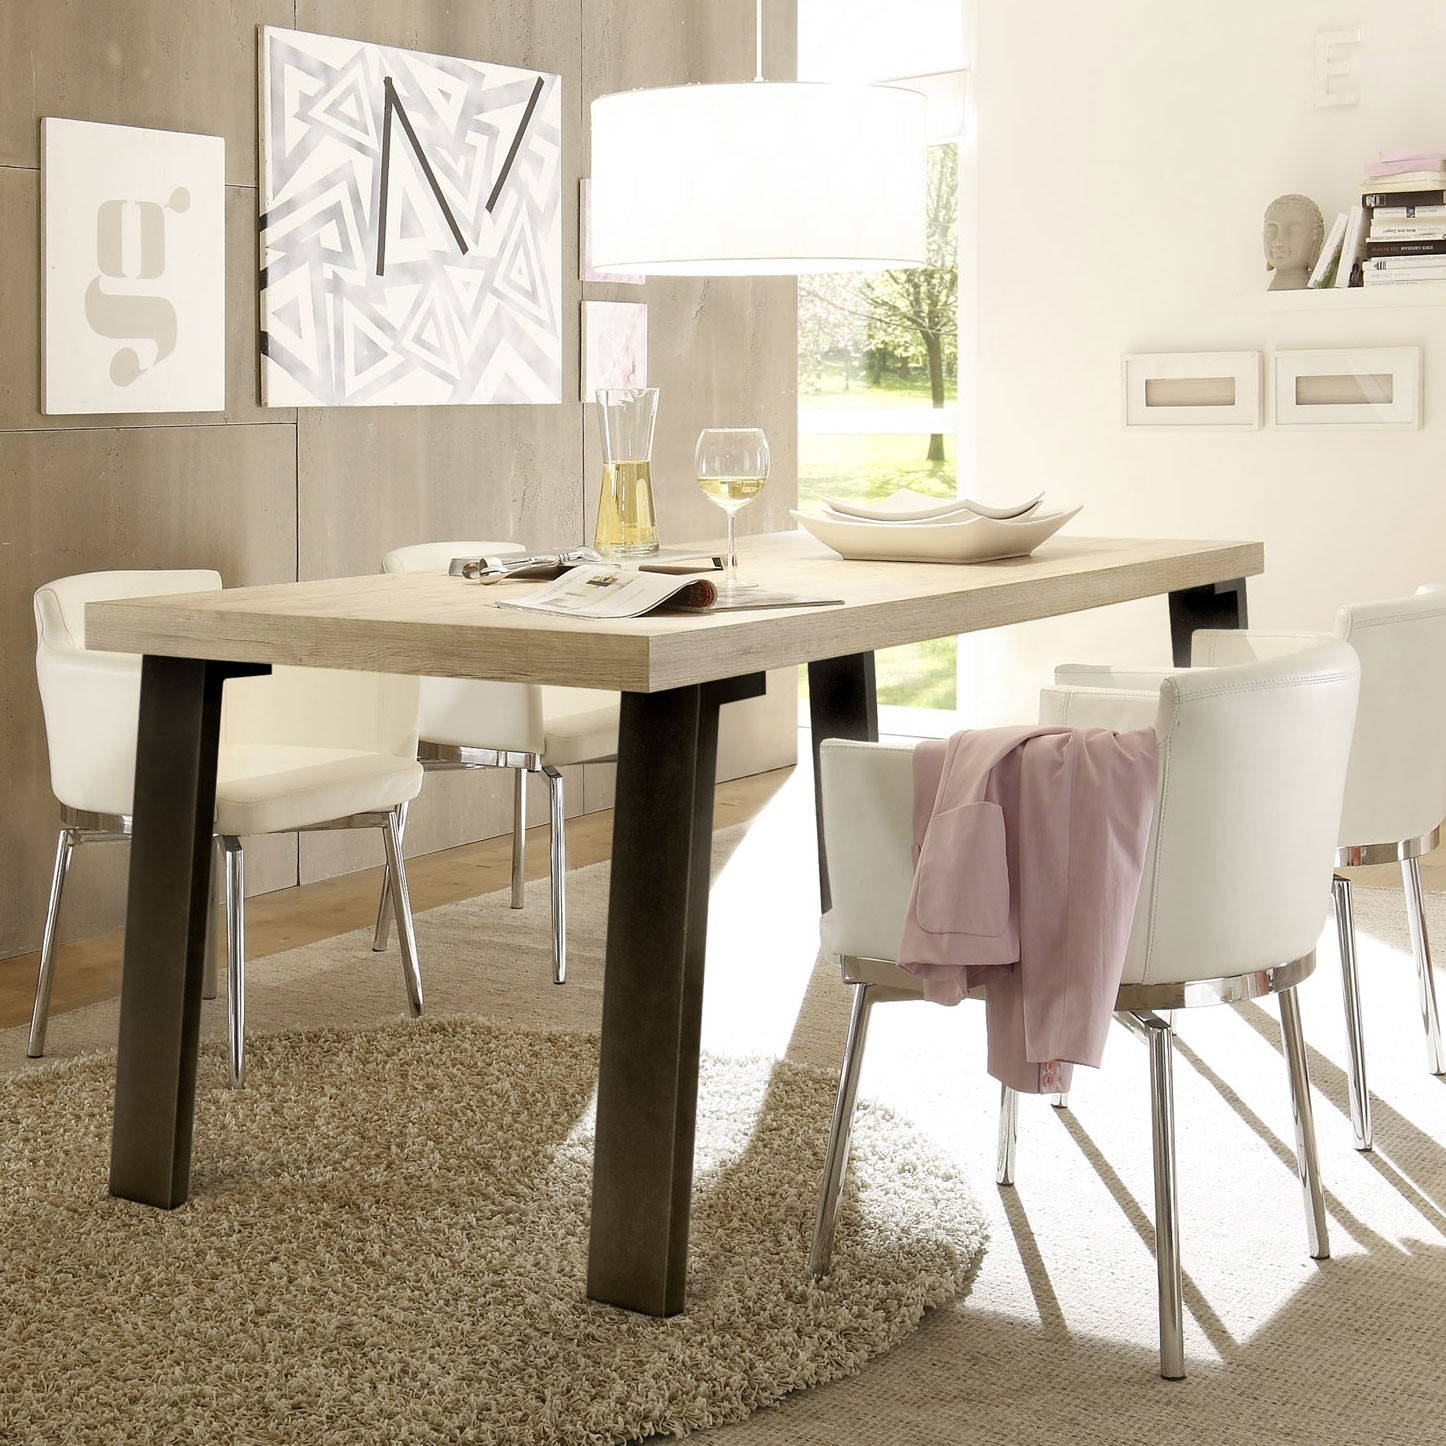 Table de repas m tal et bois moderne for Photo table a manger